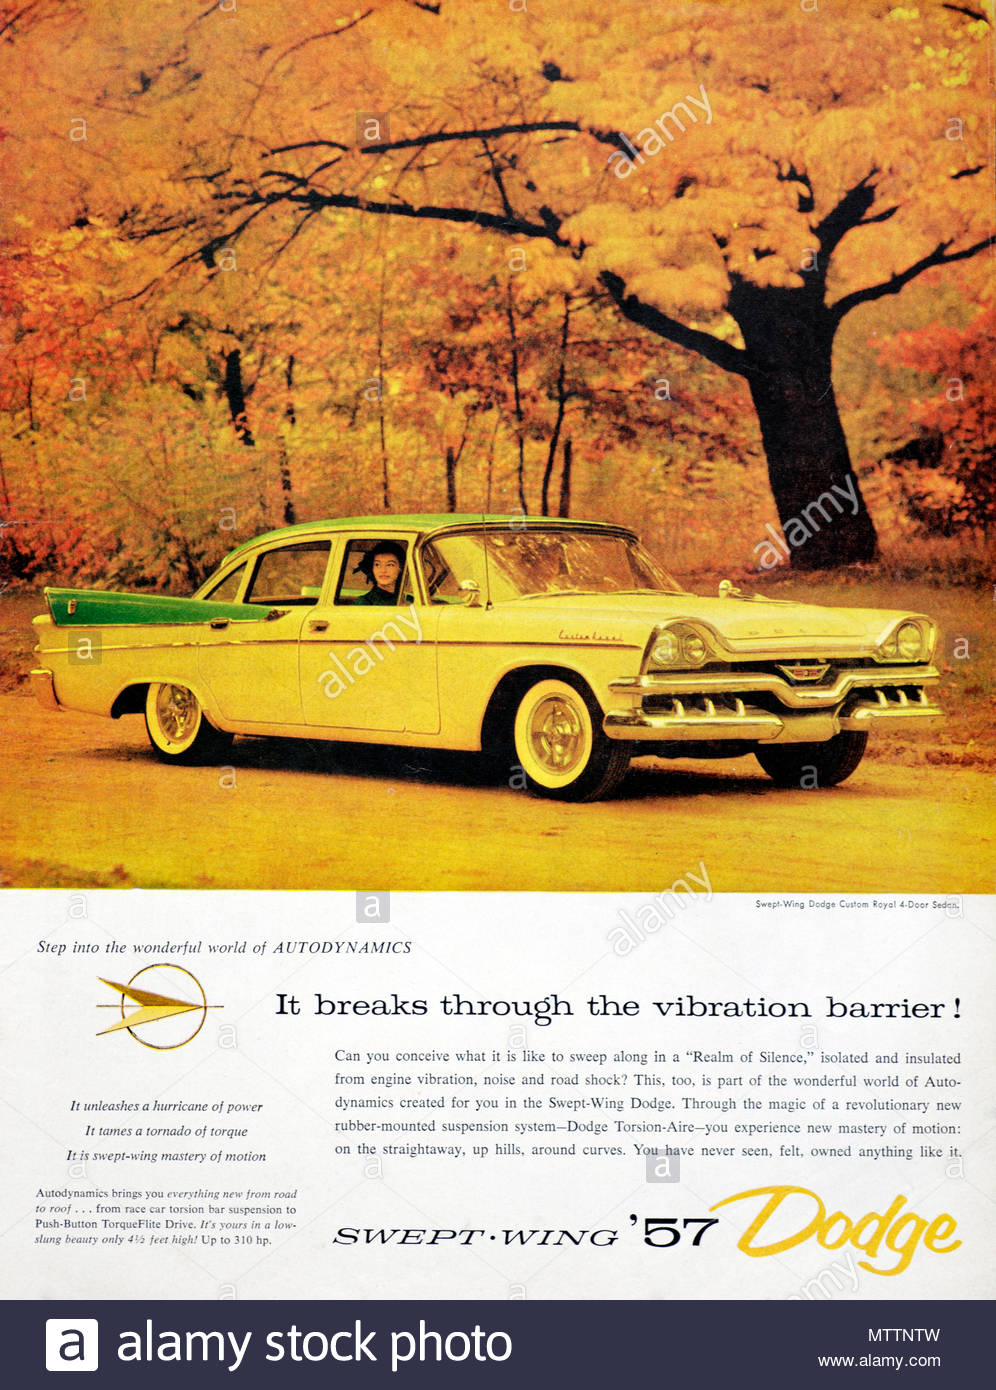 Vintage advertising for the Dodge Swept-Wing Car 1957 - Stock Image